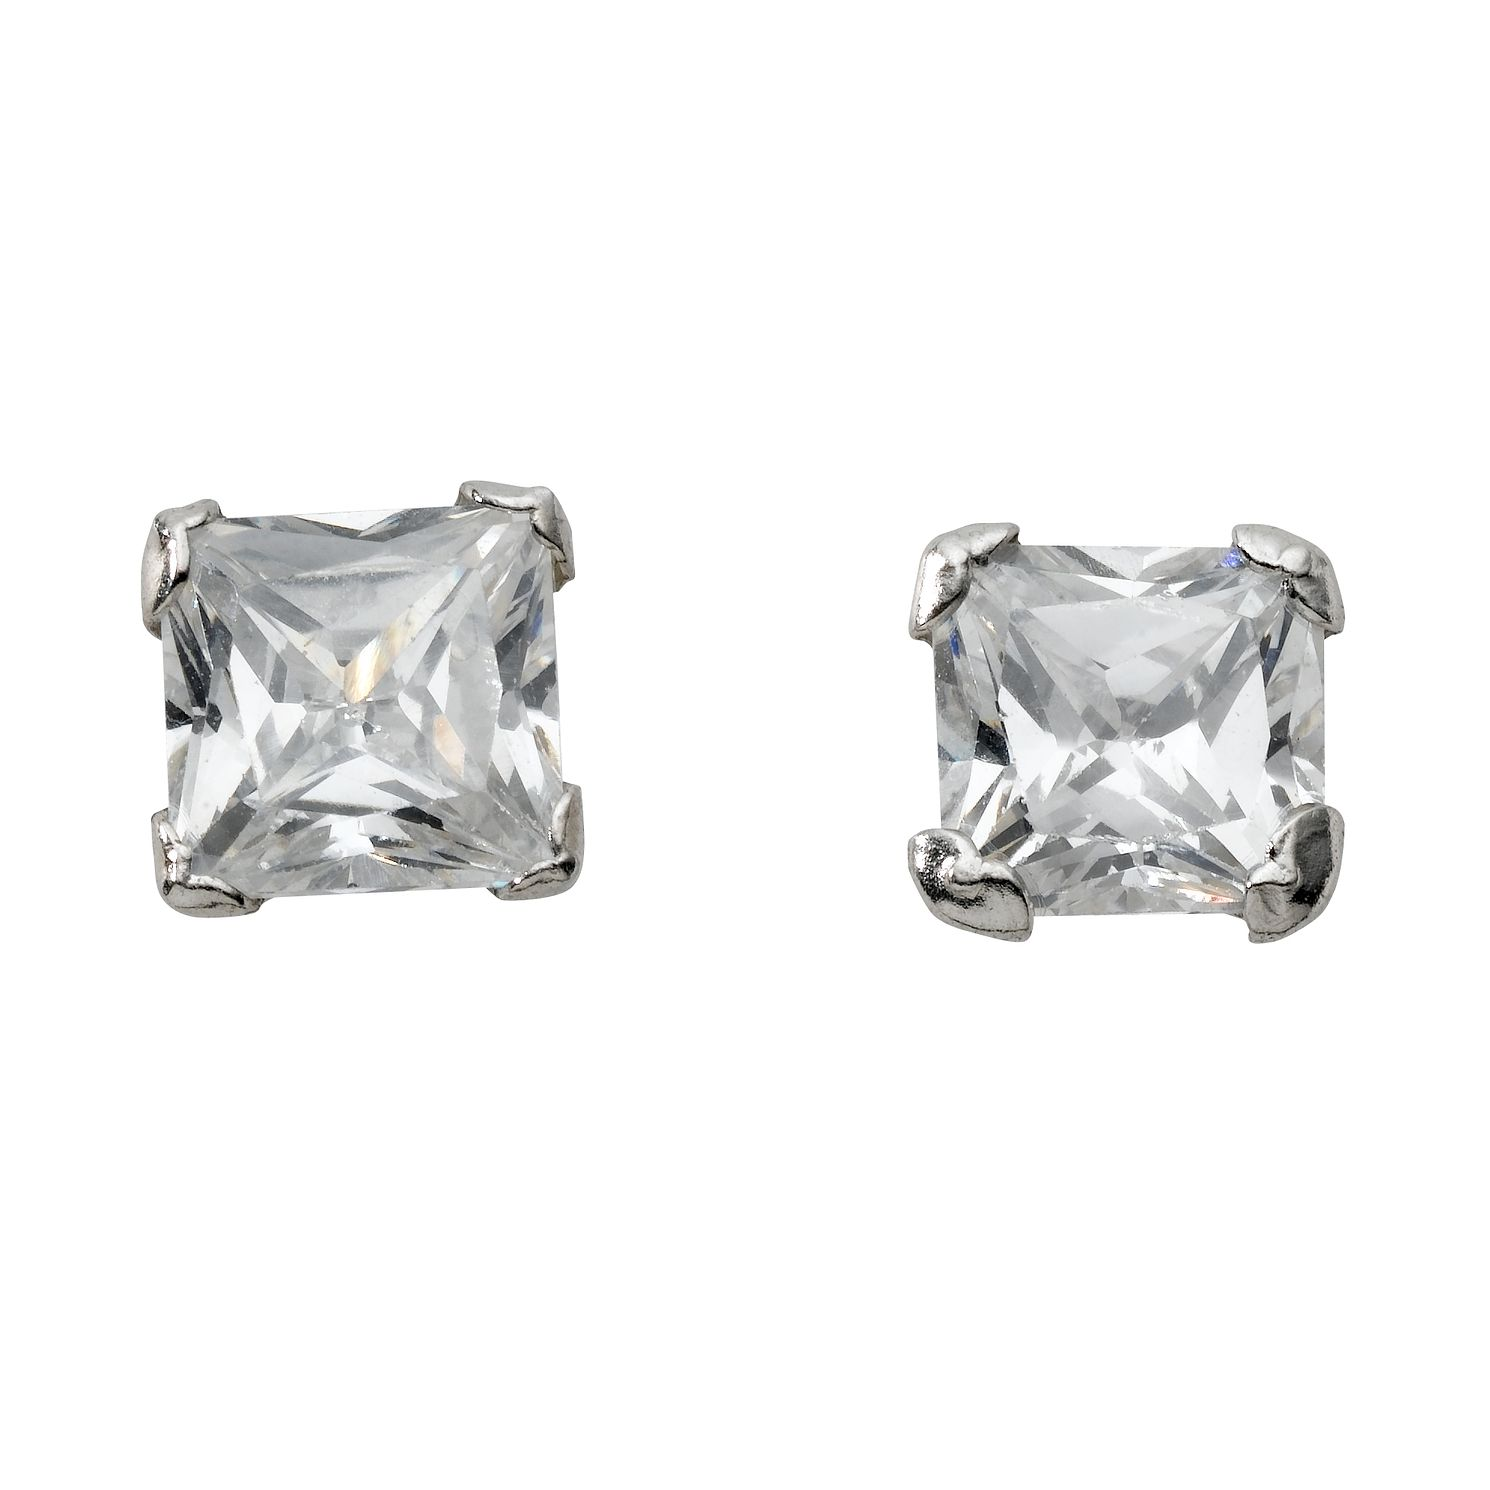 9ct White Gold Cubic Zirconia Square 5mm Stud Earrings - Product number 4670906